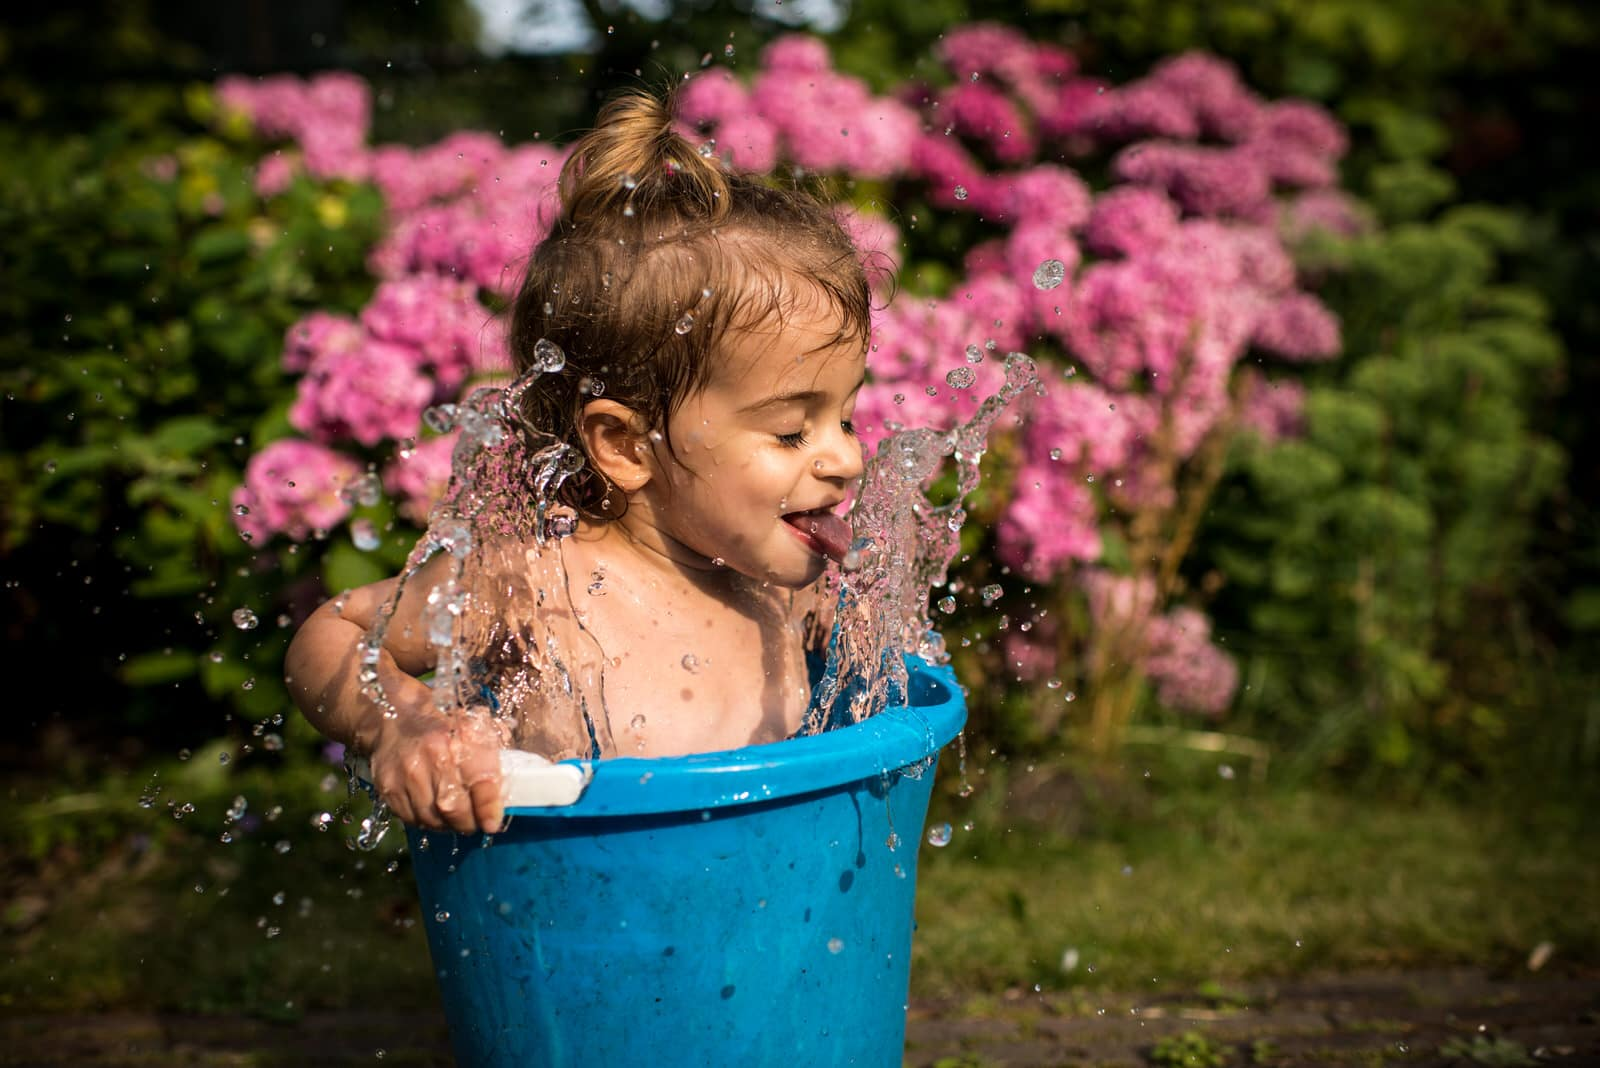 Creative Family Photography kid splashing in bucket